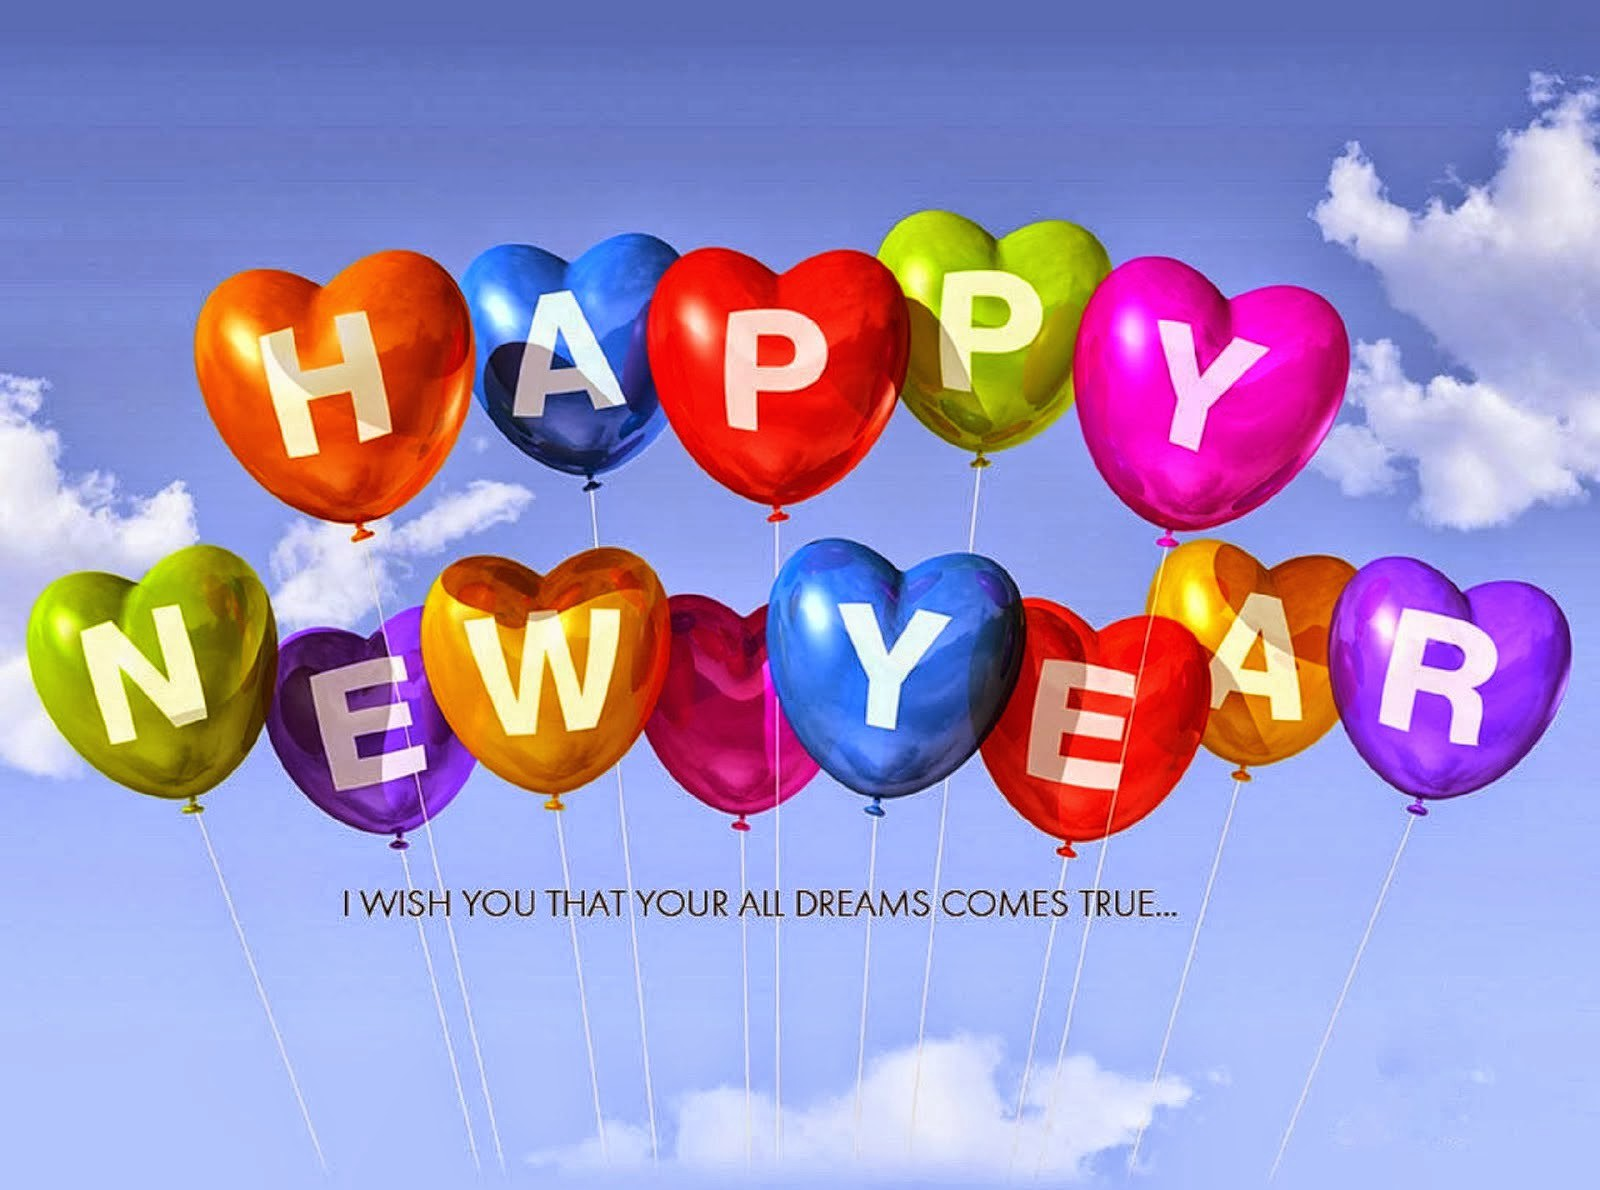 Happy New Year Whatsapp Status  Quotes  Messages Saying With Special     Happy New Year Whatsapp Status  Quotes  Messages Saying With Special New  Year Wishes